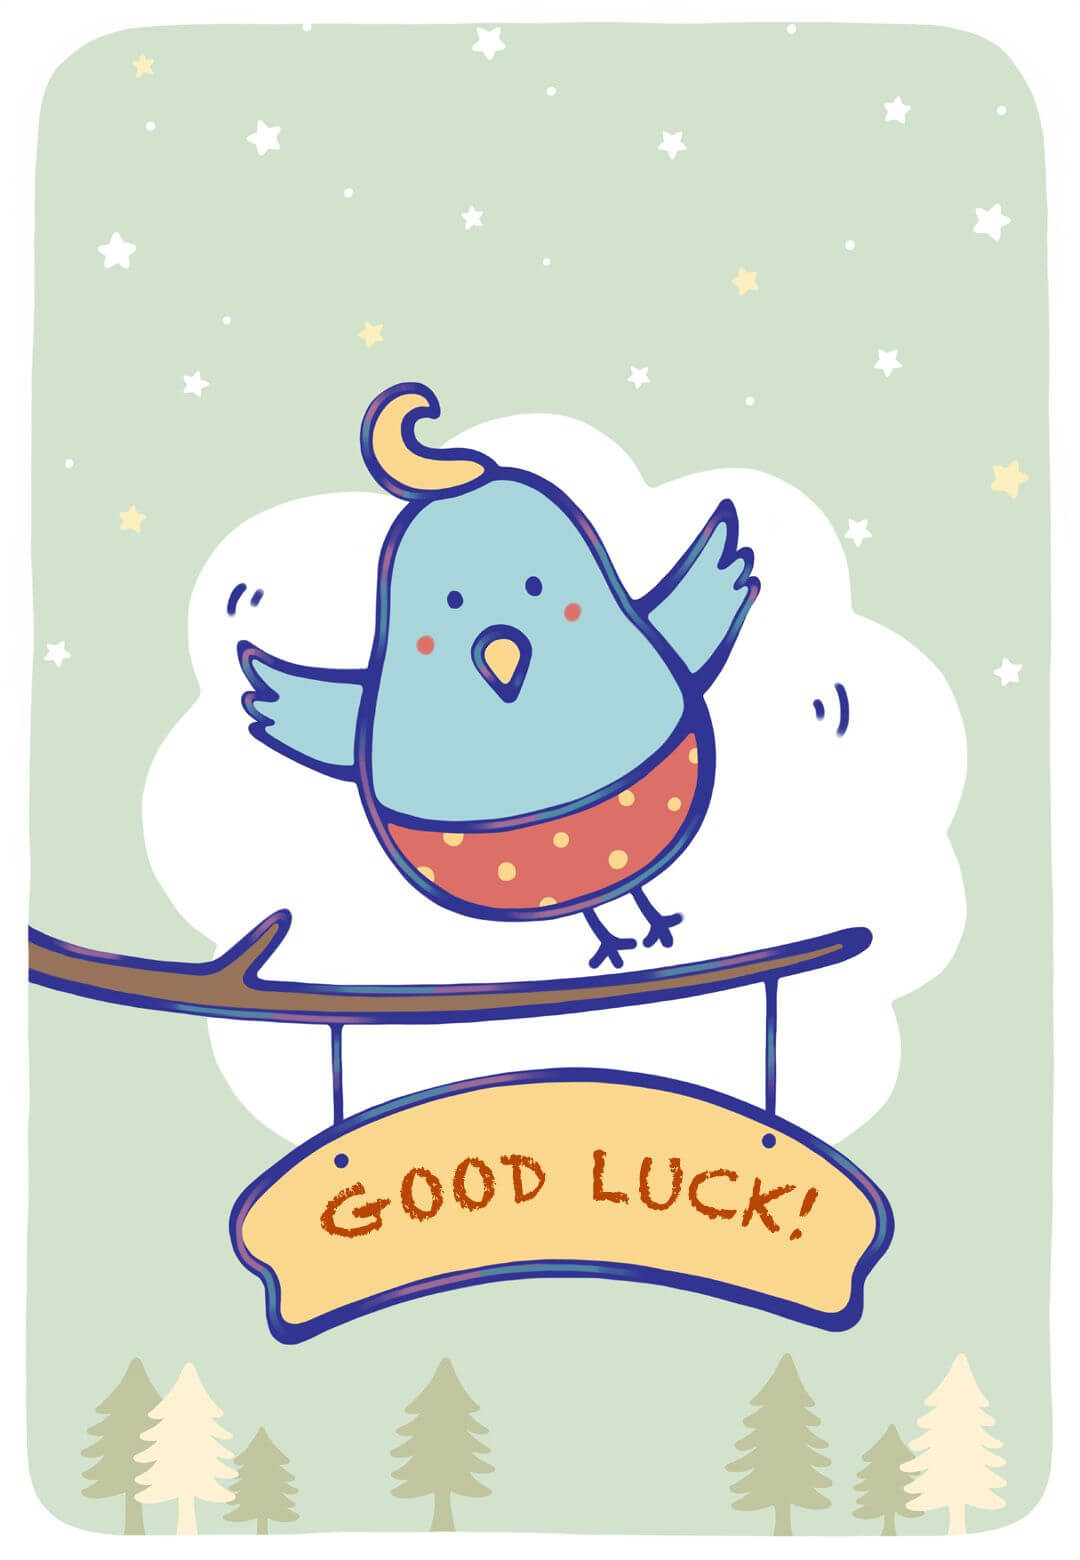 Free Printable Bluebird Of Happiness Greeting Card Intended For Good Luck Card Templates